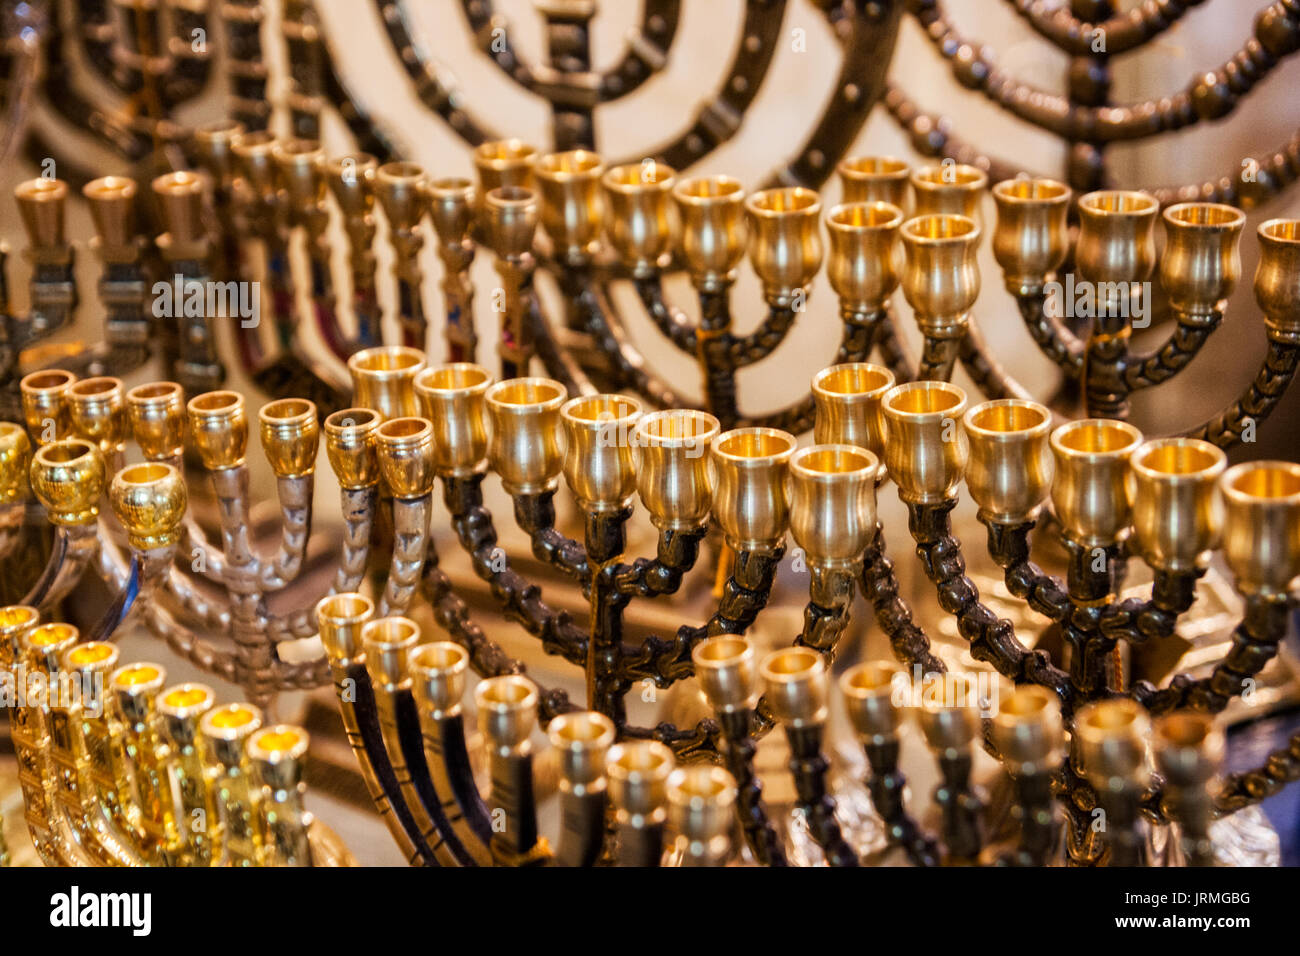 Menorah (traditional candelabra) candles used for the jewish holiday Hanukkah for sale in a tourist shop in Jerusalem, Israel - Stock Image